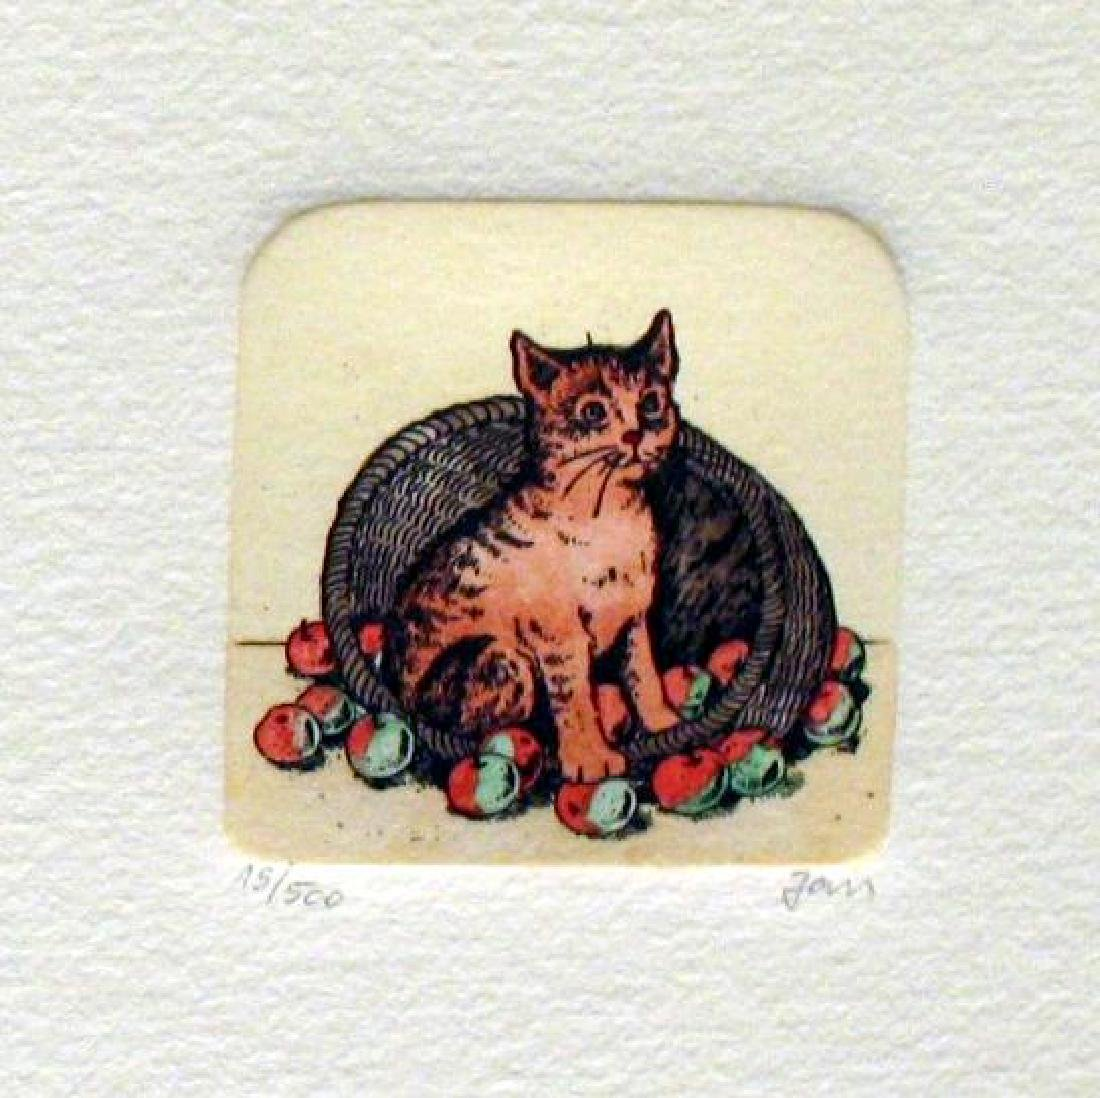 Original Colored Etching Cat Series Buy 3 Get Free - 3